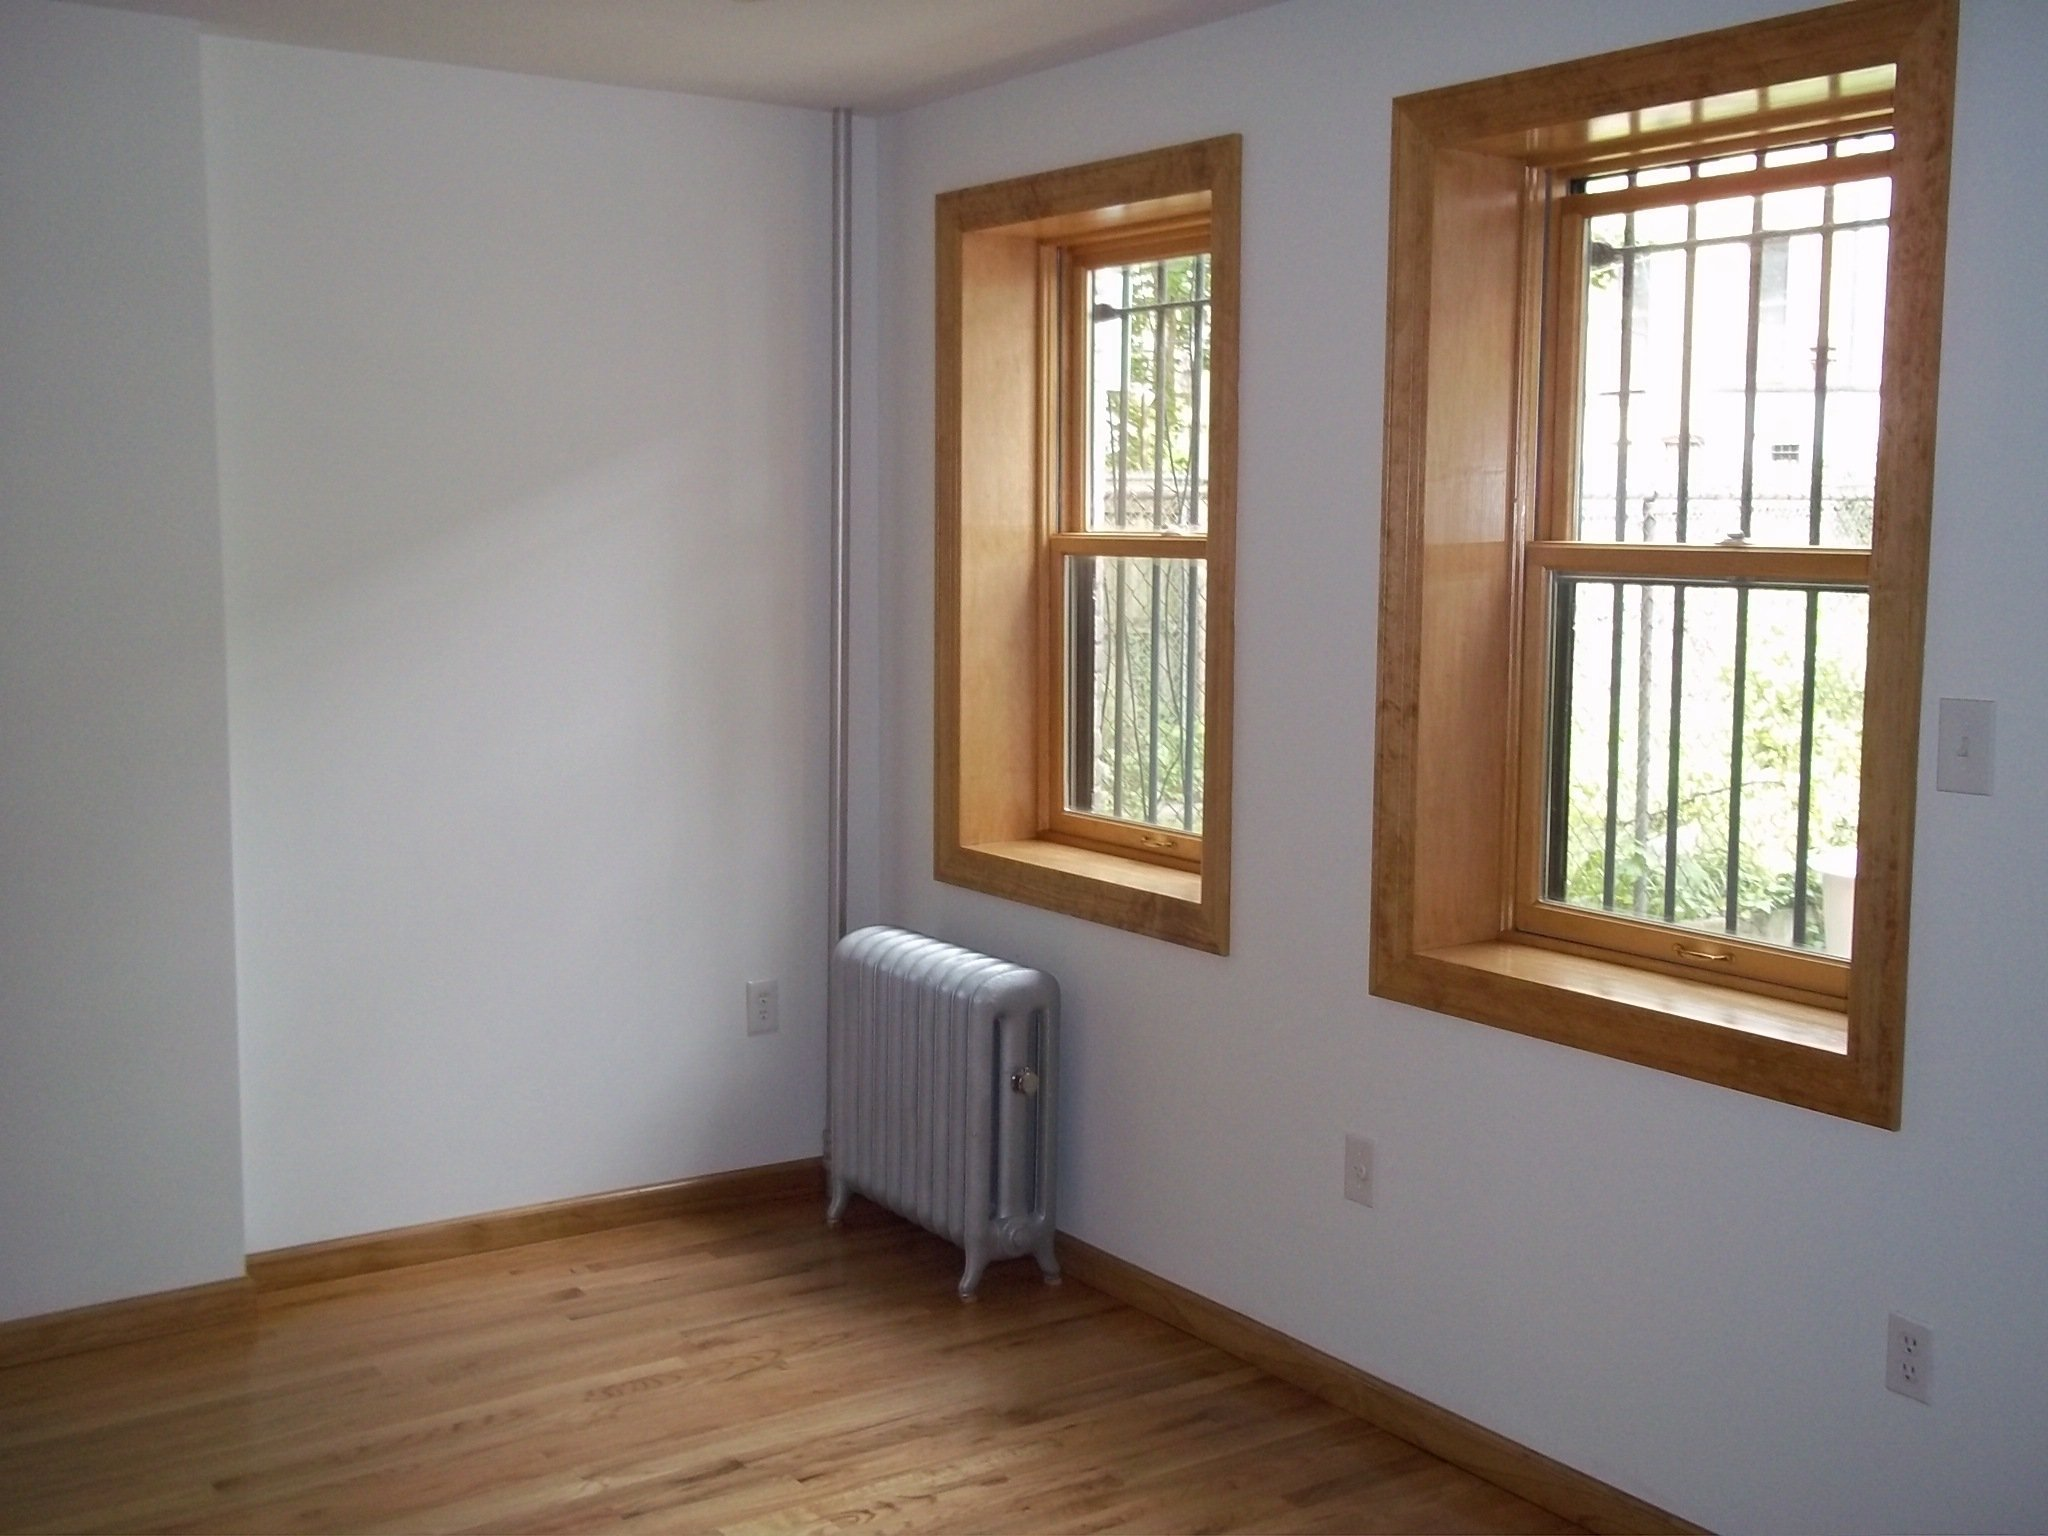 Best Stuyvesant Heights 1 Bedroom Apartment For Rent Brooklyn With Pictures